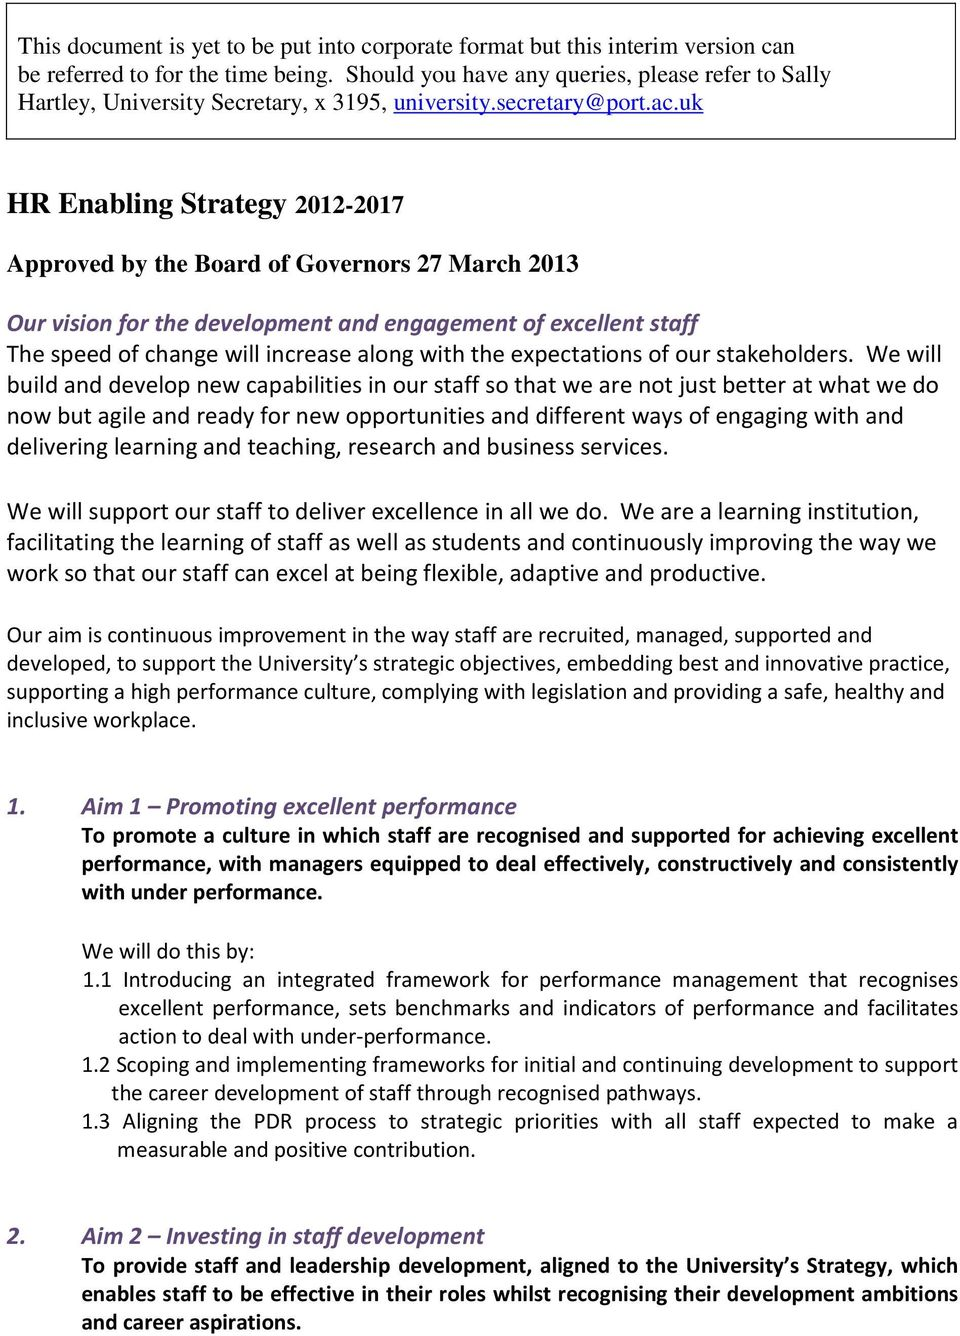 uk HR Enabling Strategy 2012-2017 Approved by the Board of Governors 27 March 2013 Our vision for the development and engagement of excellent staff The speed of change will increase along with the